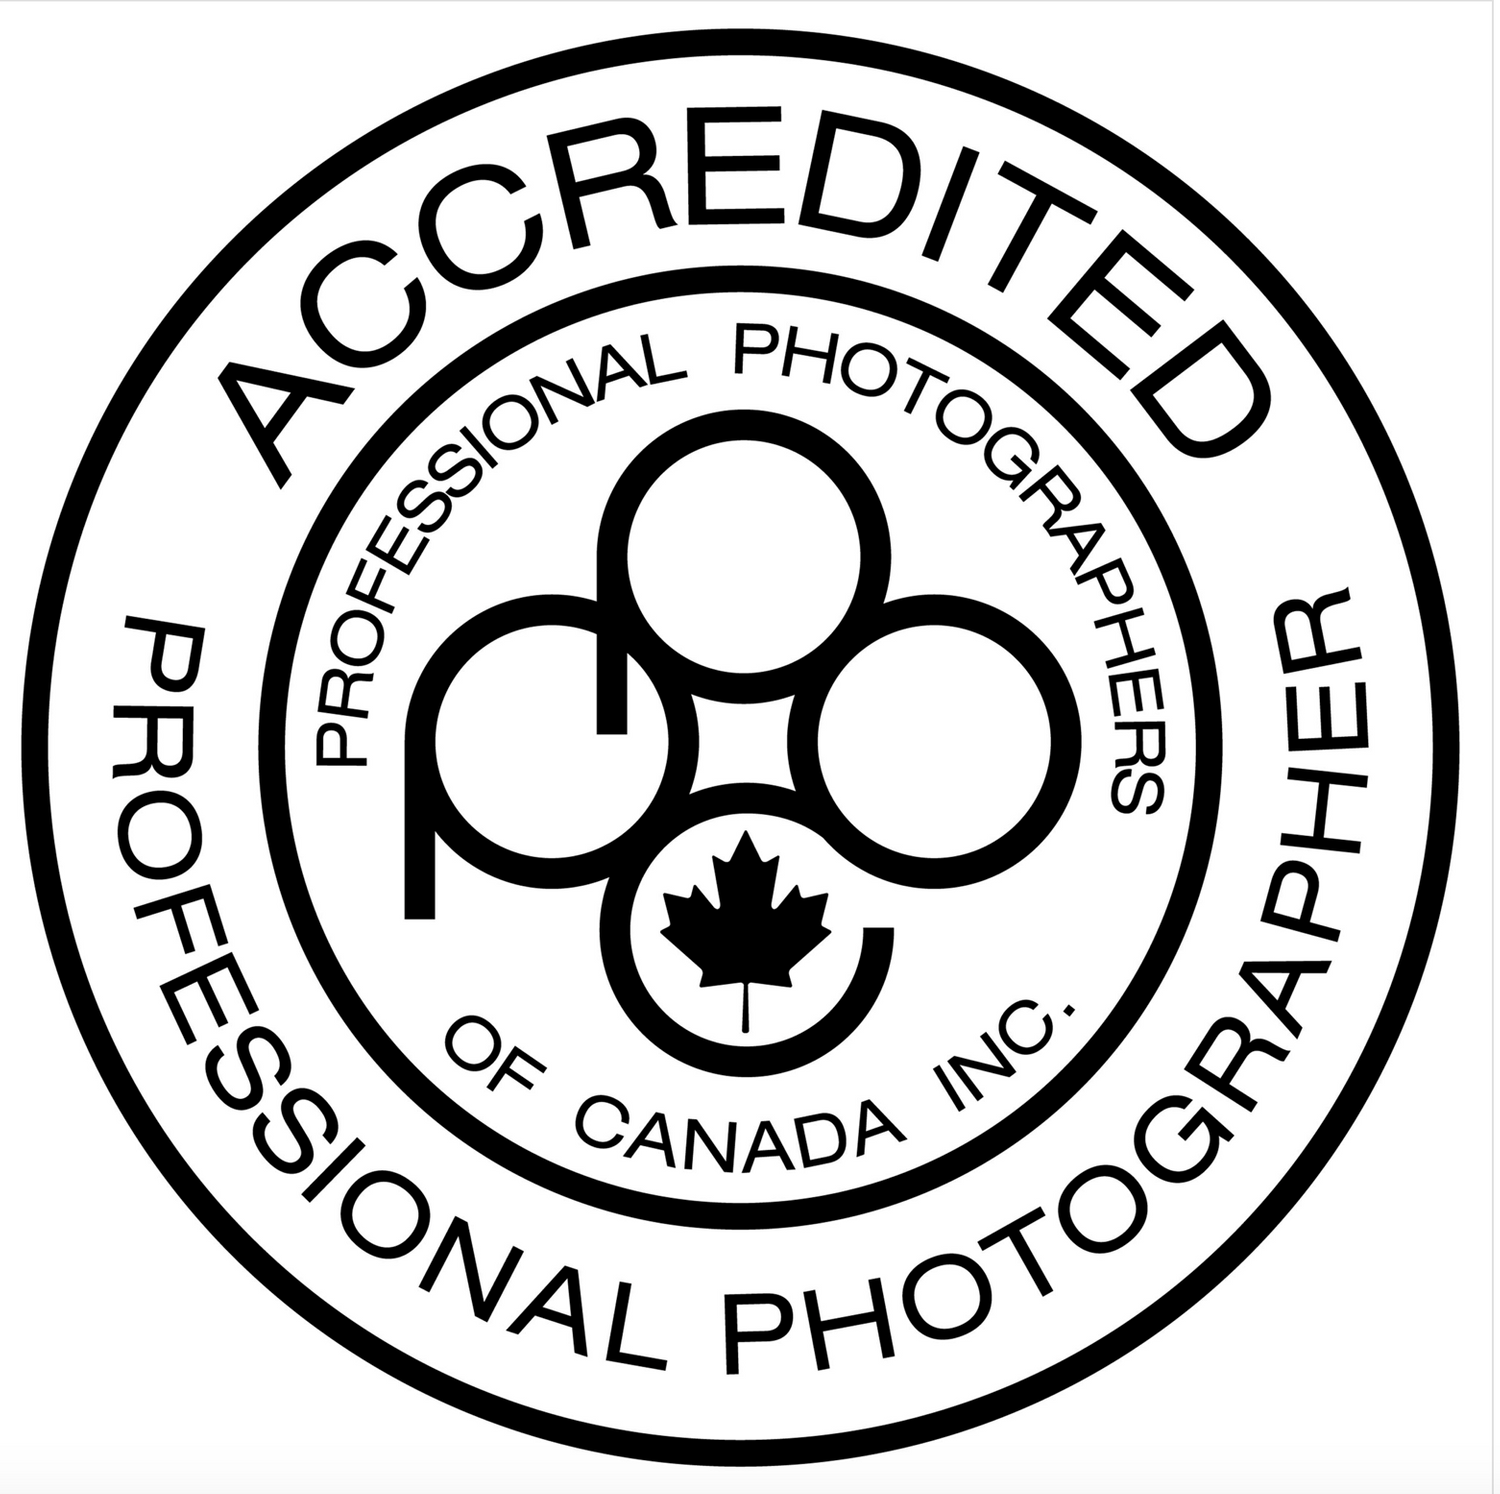 PPOC label Accredited by the Professional Photographers of Canada Seal